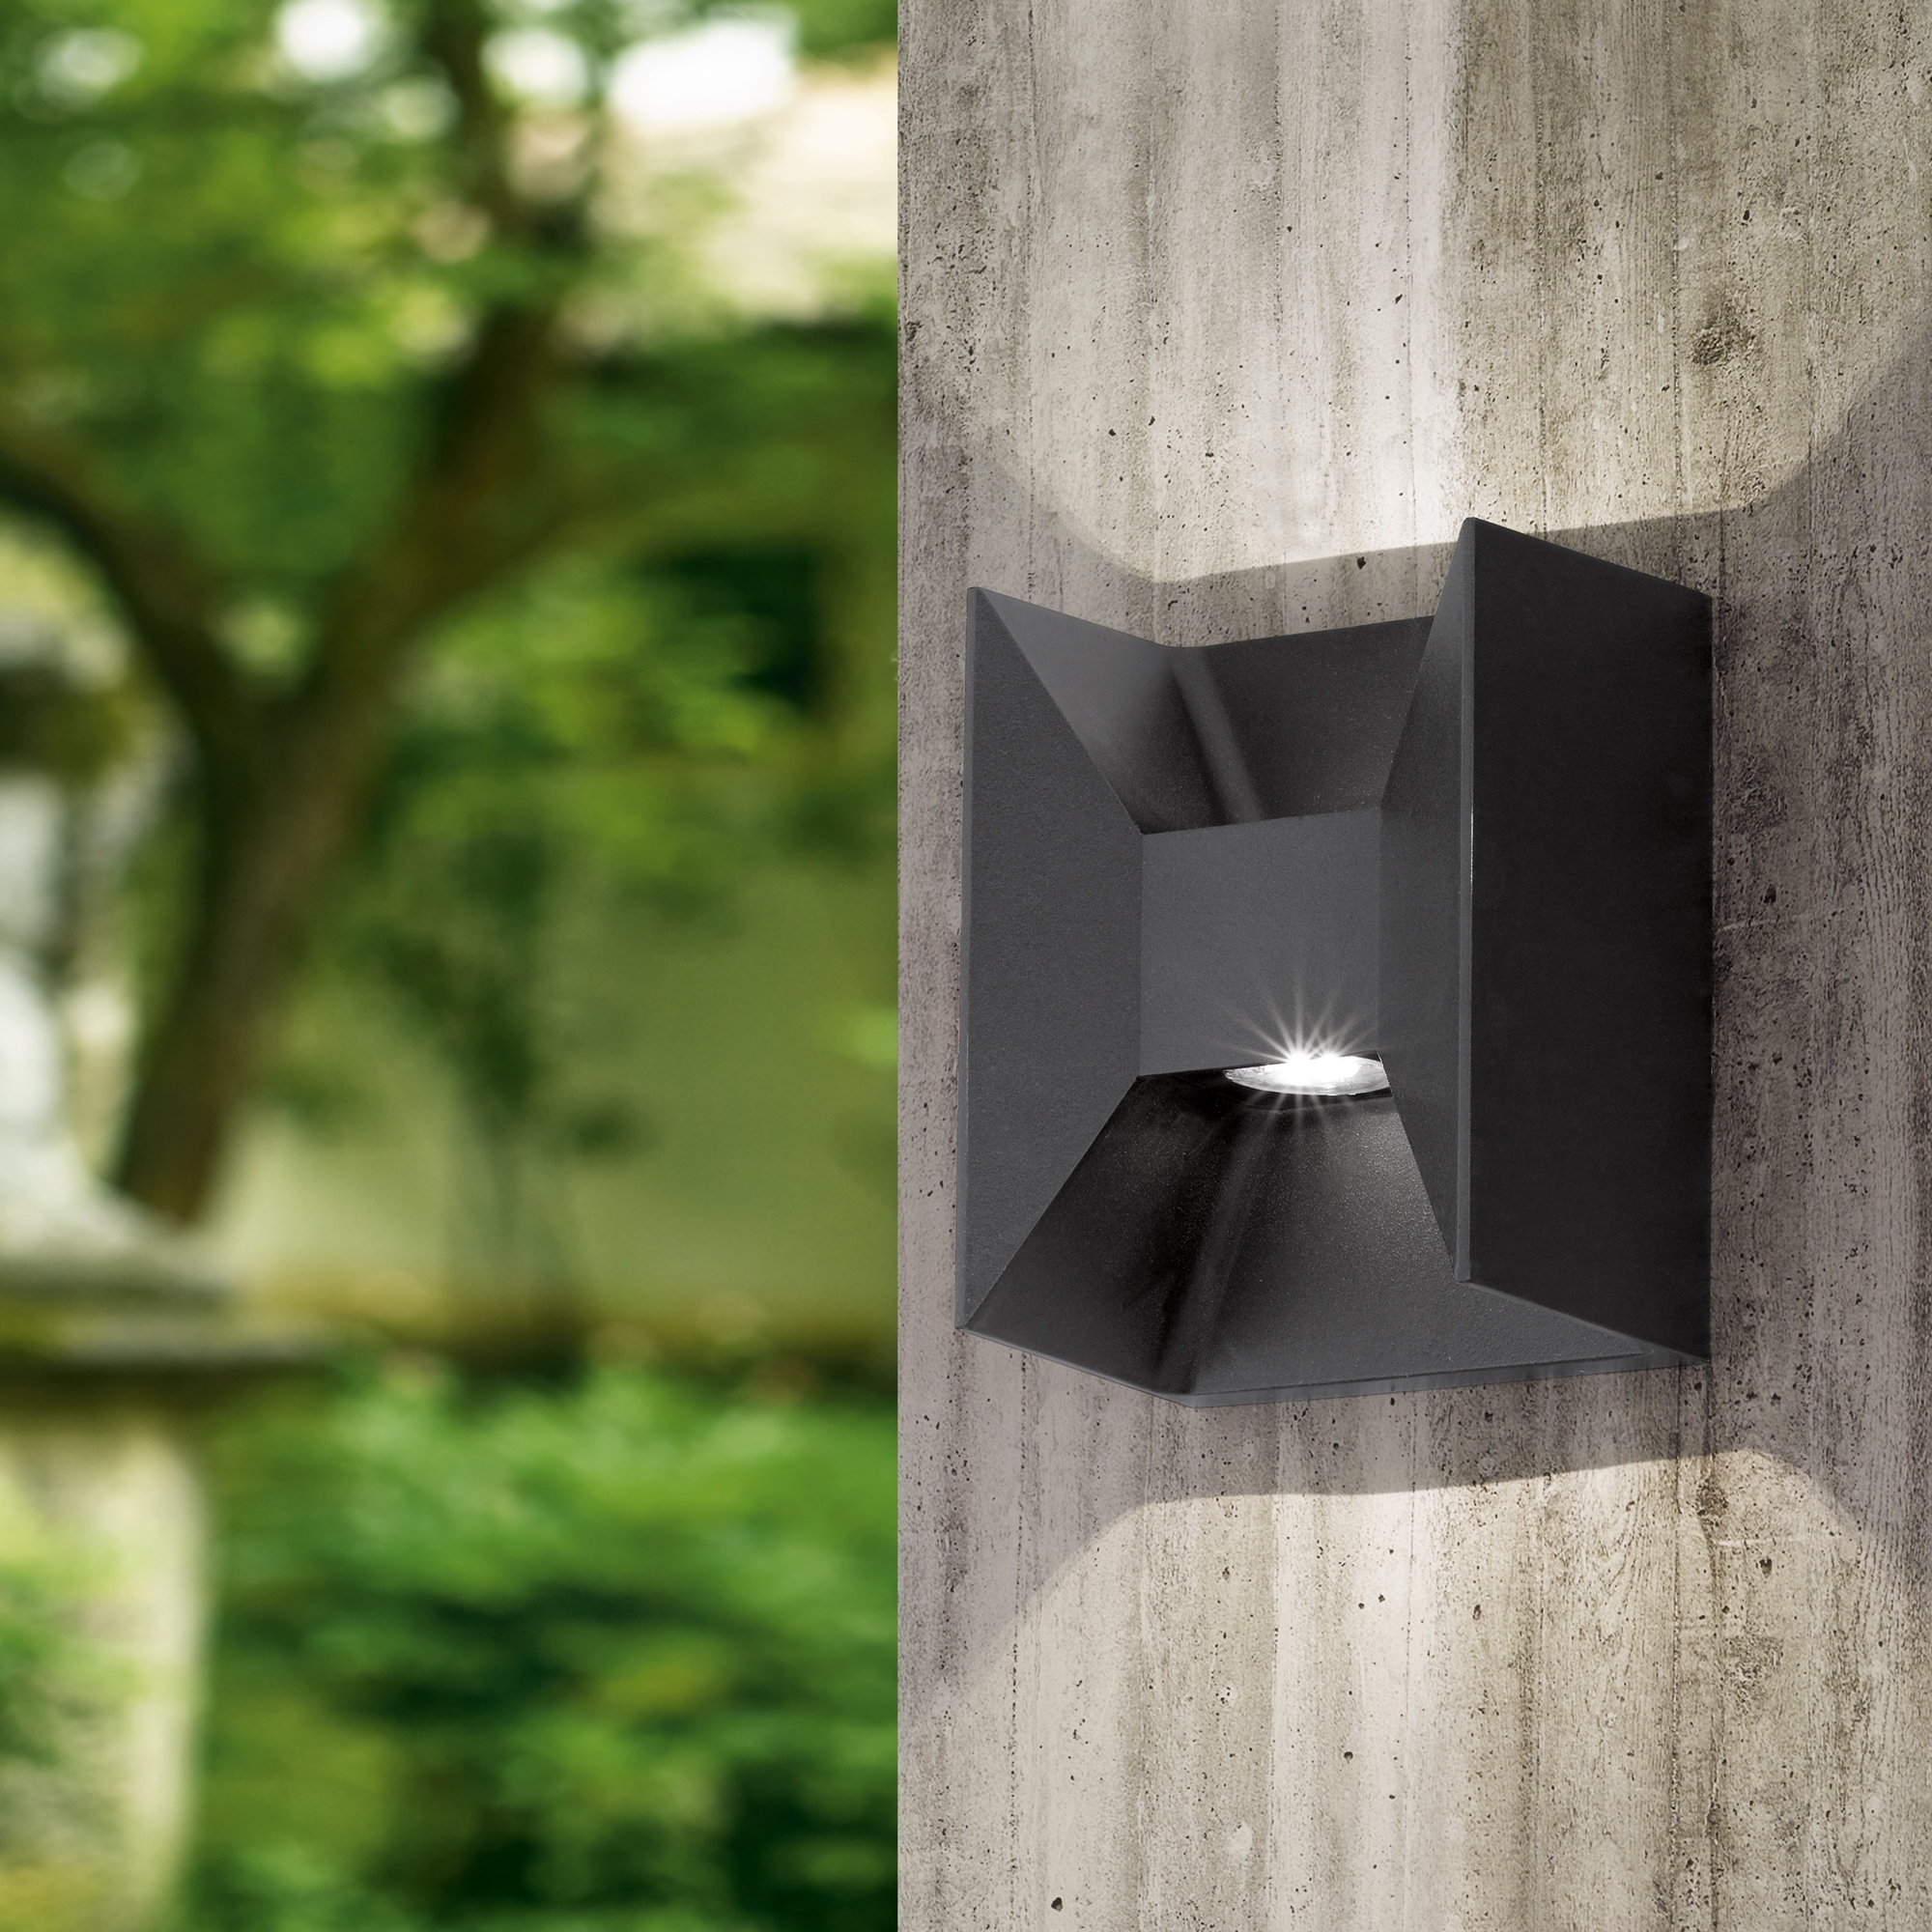 93319 / Morino / Outdoor Lighting / Main Collections / Products Throughout Eglo Outdoor Lighting (View 12 of 15)